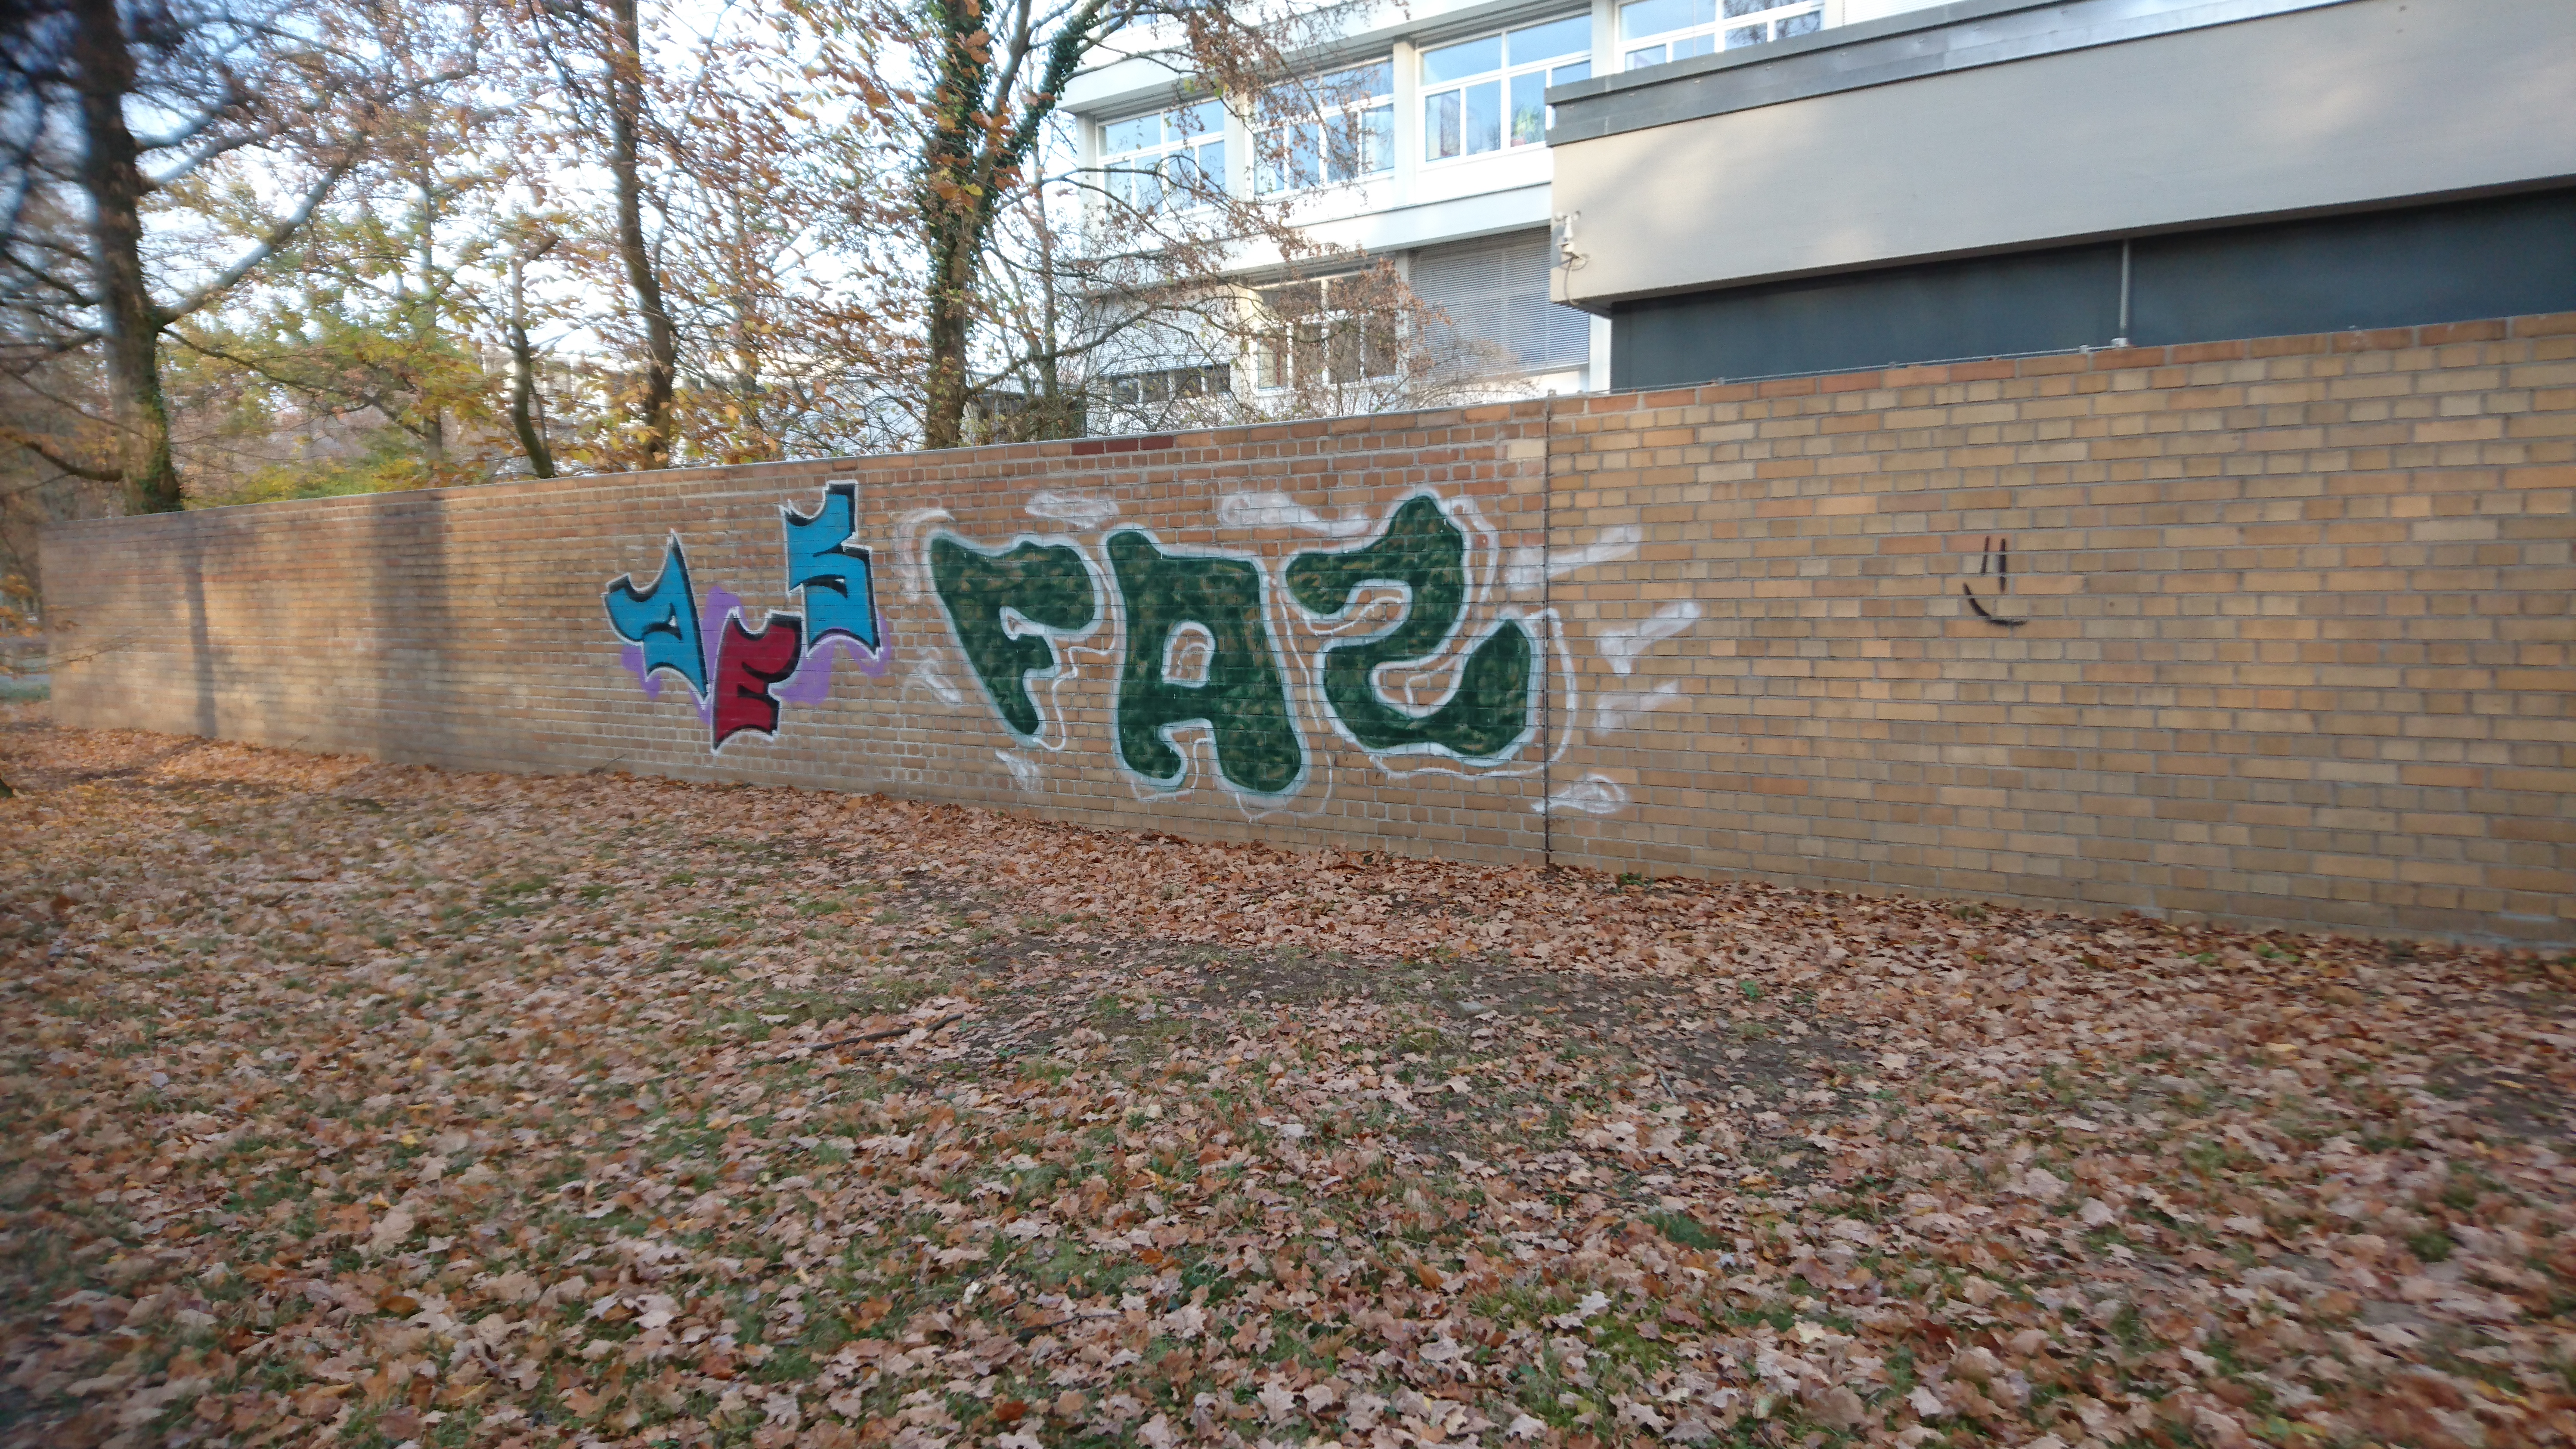 Graffiti auf Klinkersteinmauer